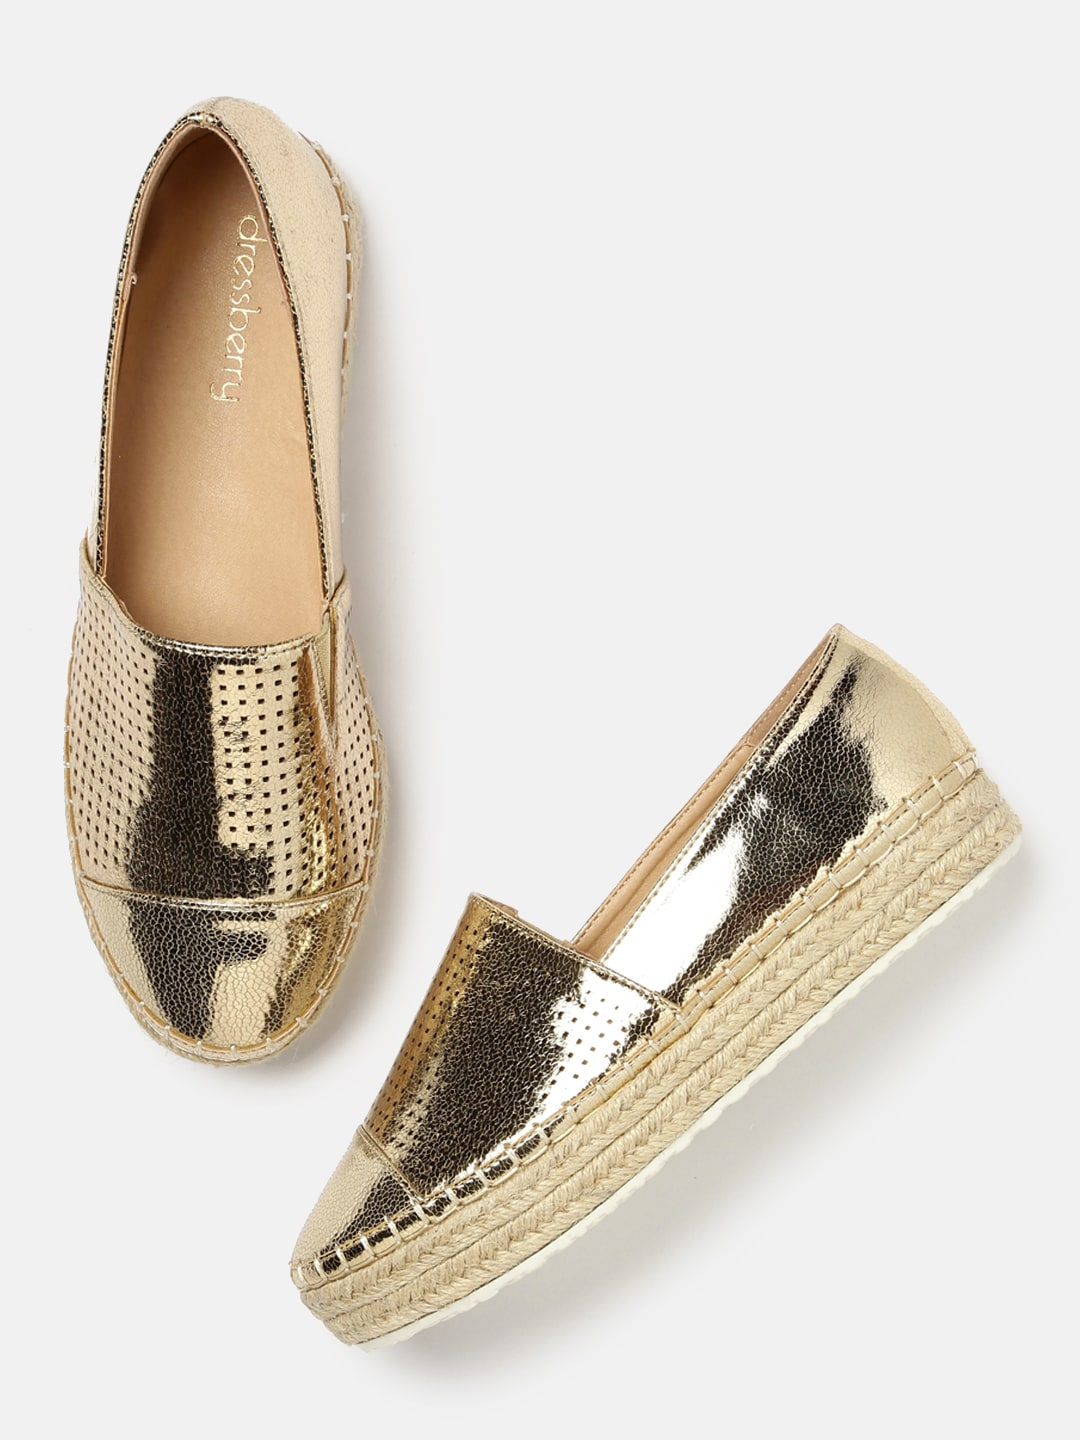 DressBerry Women Gold-Toned Espadrilles image